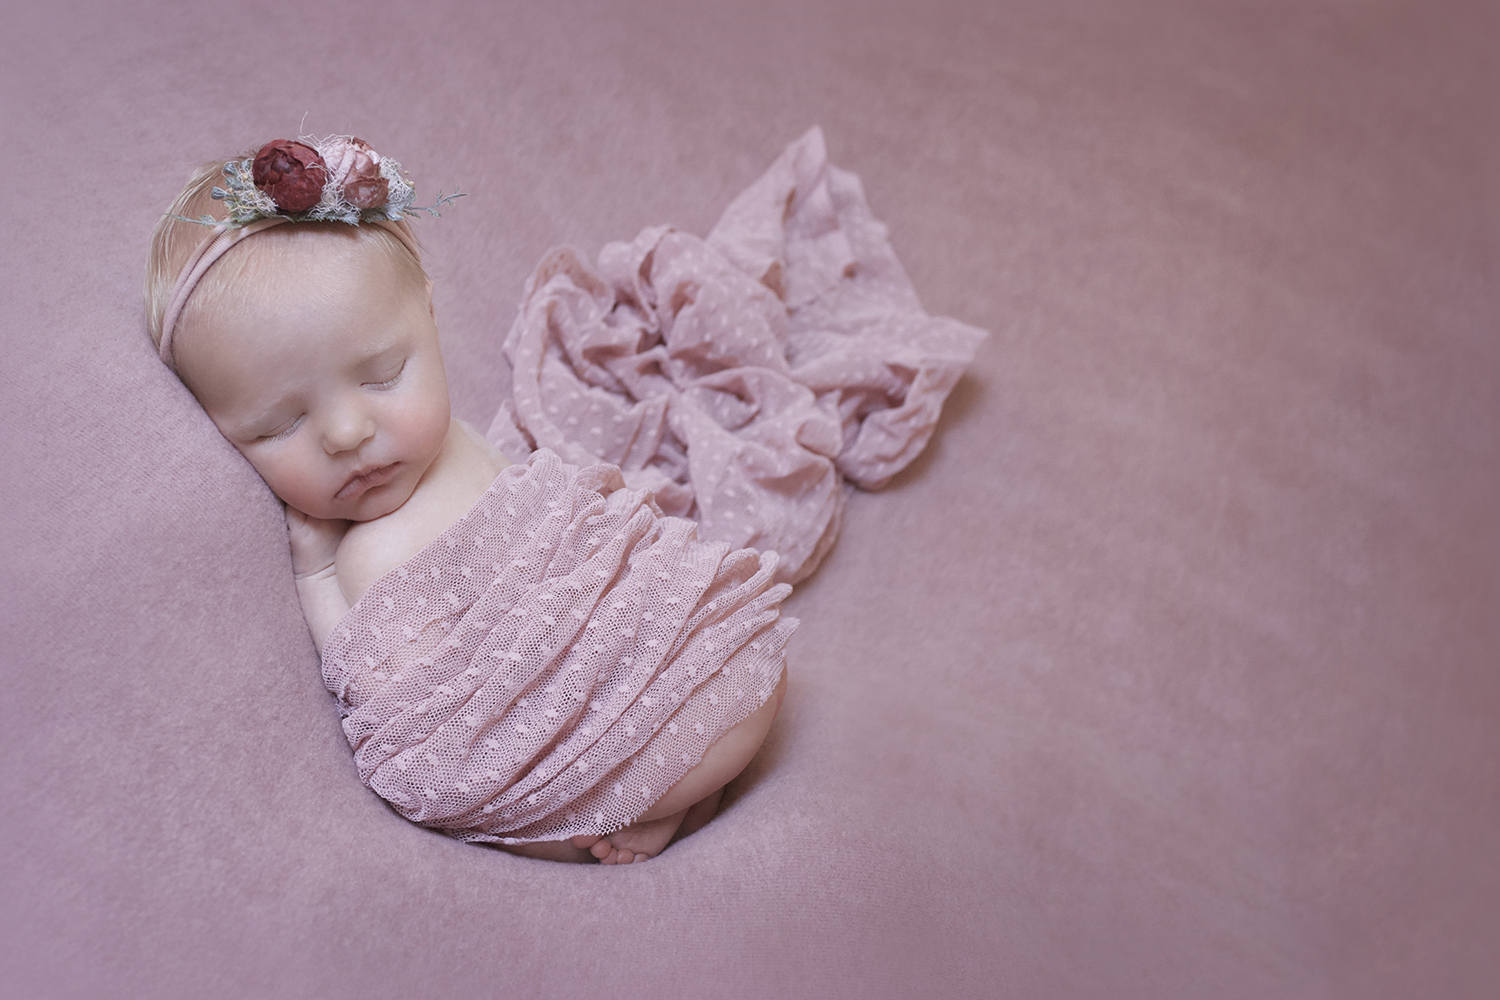 Newborn baby girl sleeping on pink blanket with pink lace wrap and pink flower tieback